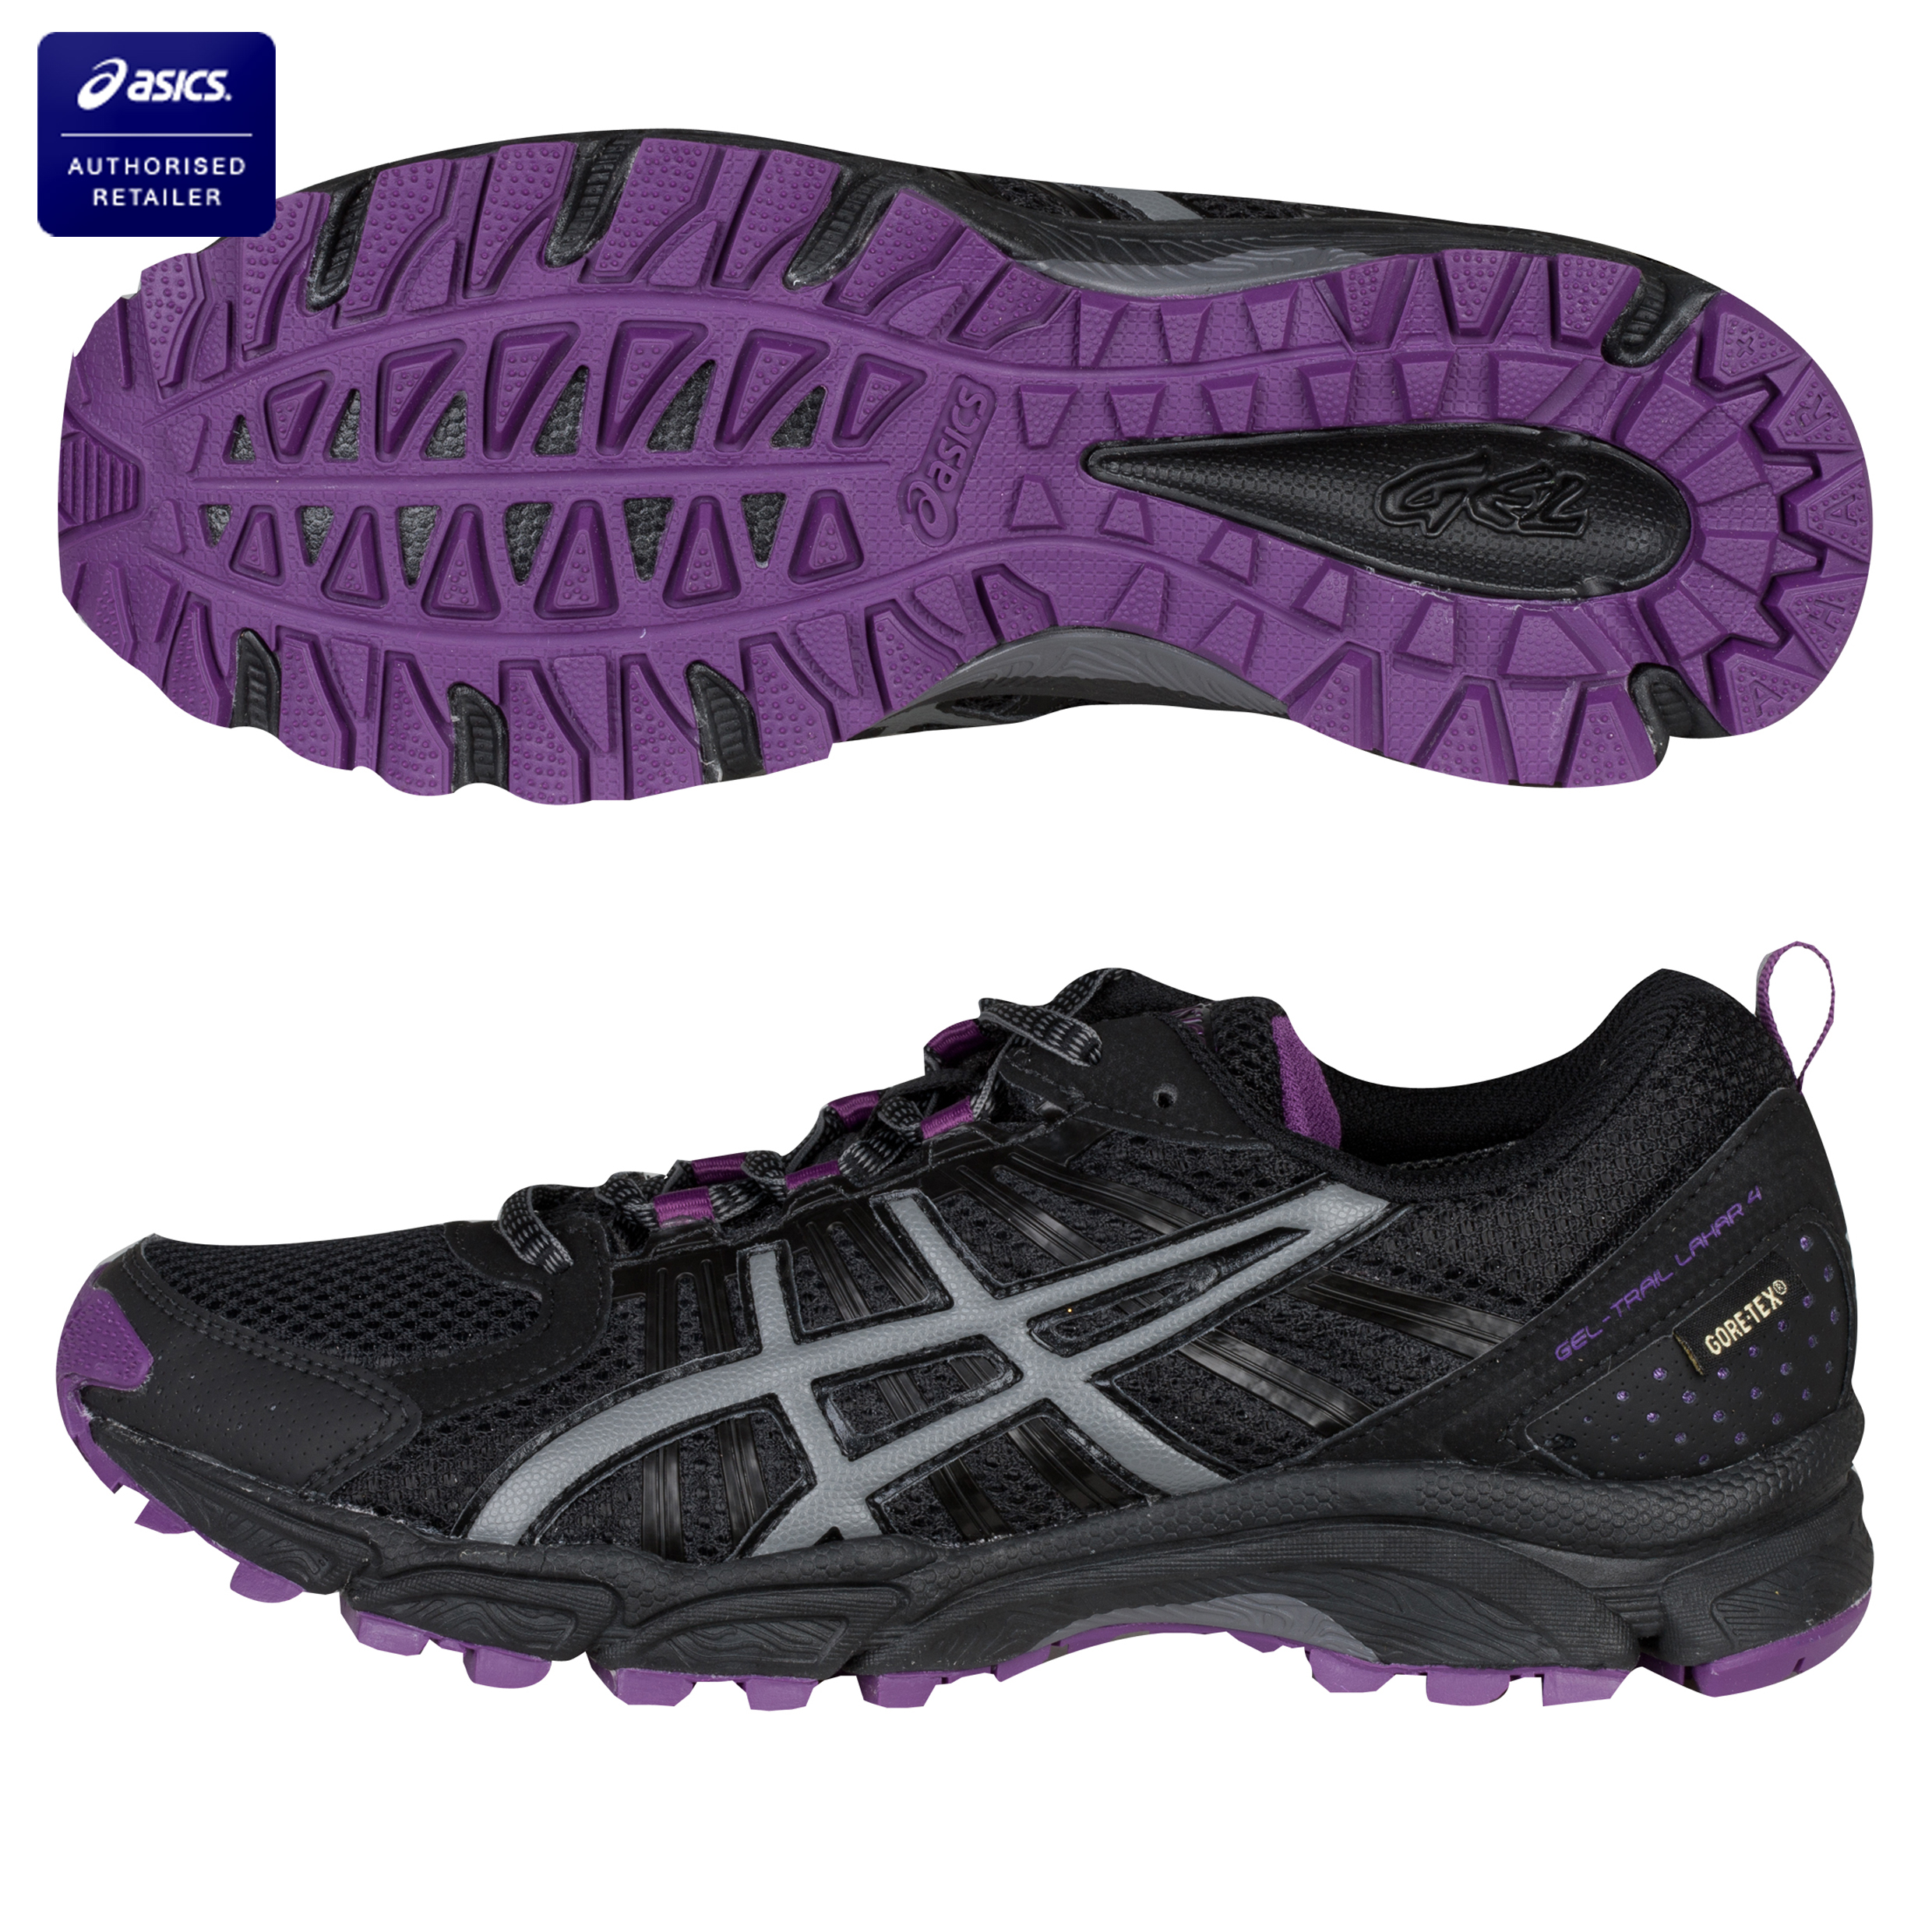 Asics Gel-Trail Lahar 4 G-TX Running Trainers - Black/Titanium/Purple - Womens